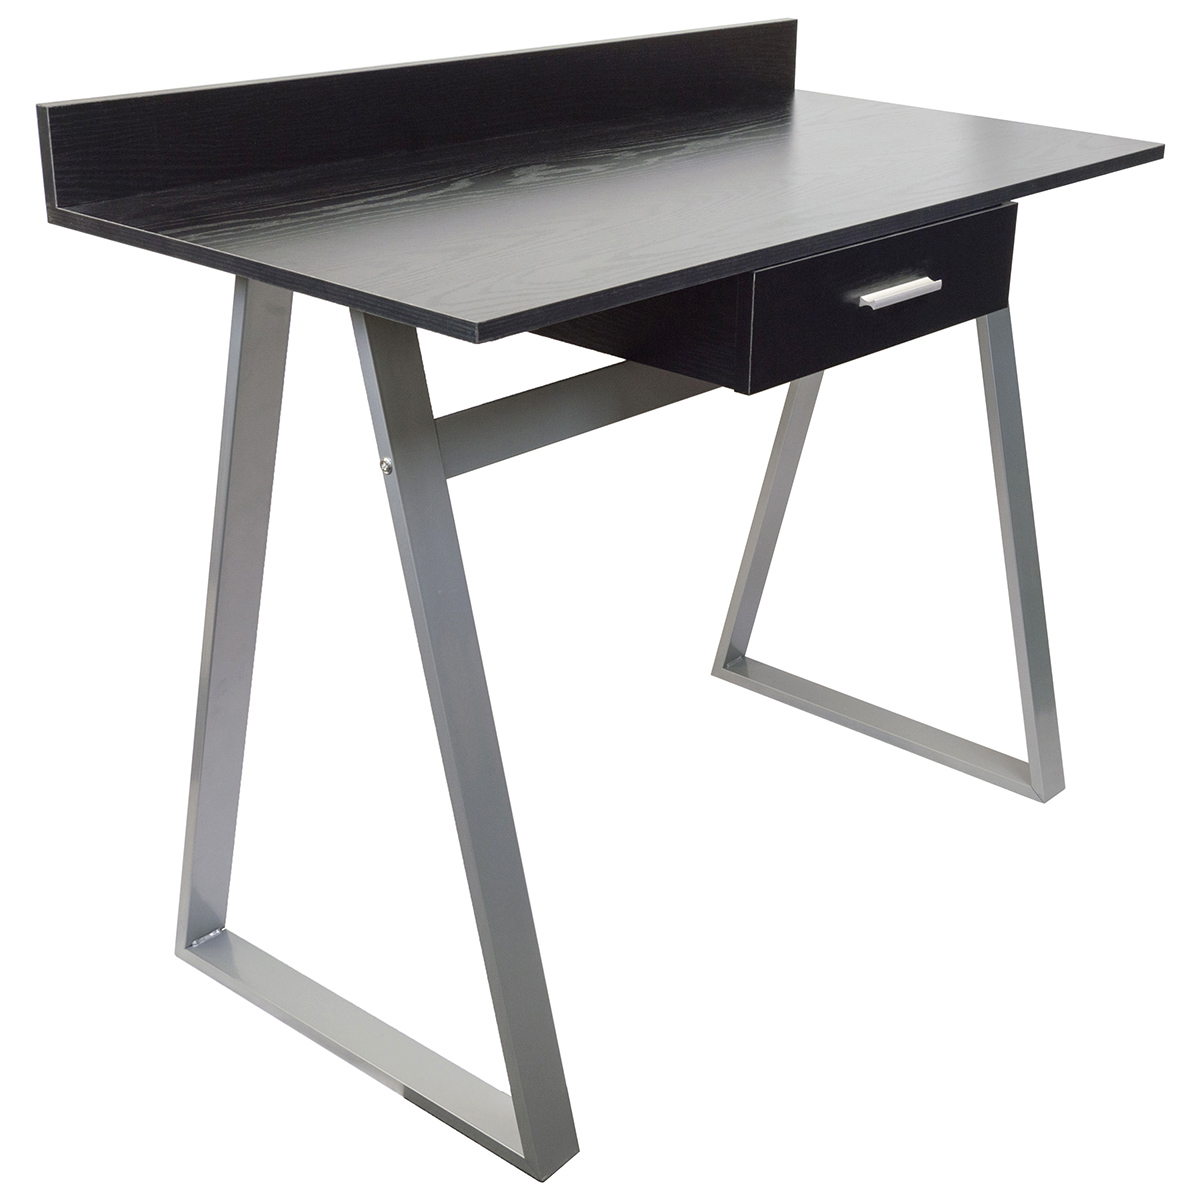 Black Woodgrain Work Desk with Silver Legs